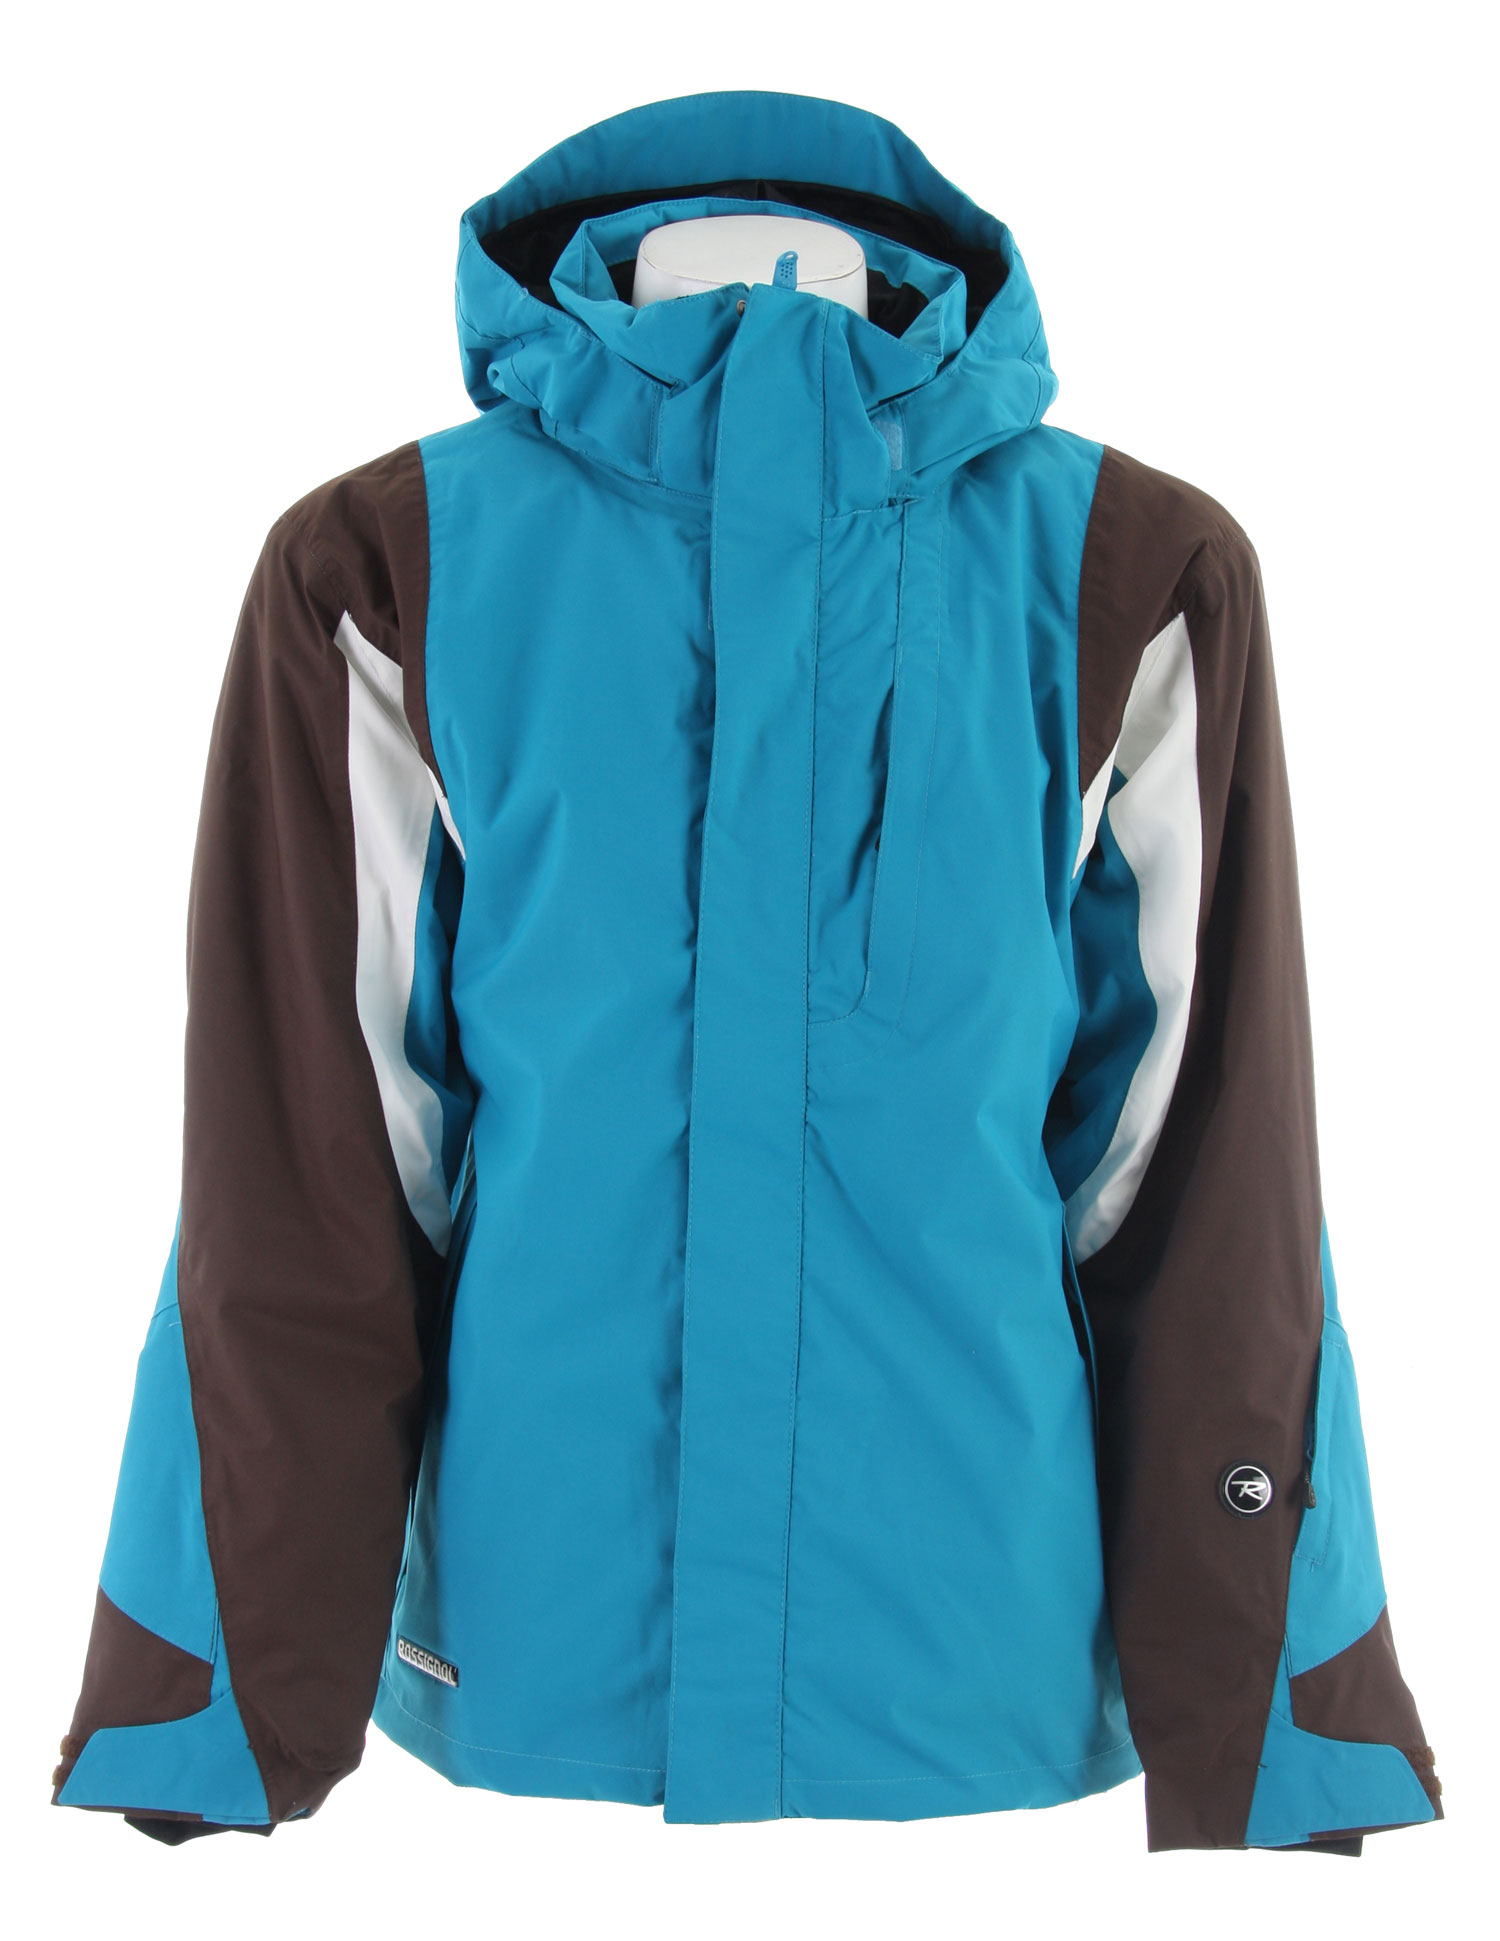 Ski The Rossignol Frontside Ski Jacket is a fantastic ski jacket made from 100% real polyester. The polyester makes it an extremely comfortable and sleek jacket. The long sleeves will help keep you warm and keep the cold air outside of your jacket where it belongs. Its comfortable but sleek design will have people taking a second glance at this cool and effective ski jacket. It packs a whole lot of features into a very affordable package!Key Features of the Rossignol Frontside Ski Jacket: 10,000mm Waterproof 10,000g Breathability Diamond Content: 100% Polyester Finish: Milky Coating Lining: Body 100g/Sleeves 80g - $164.95